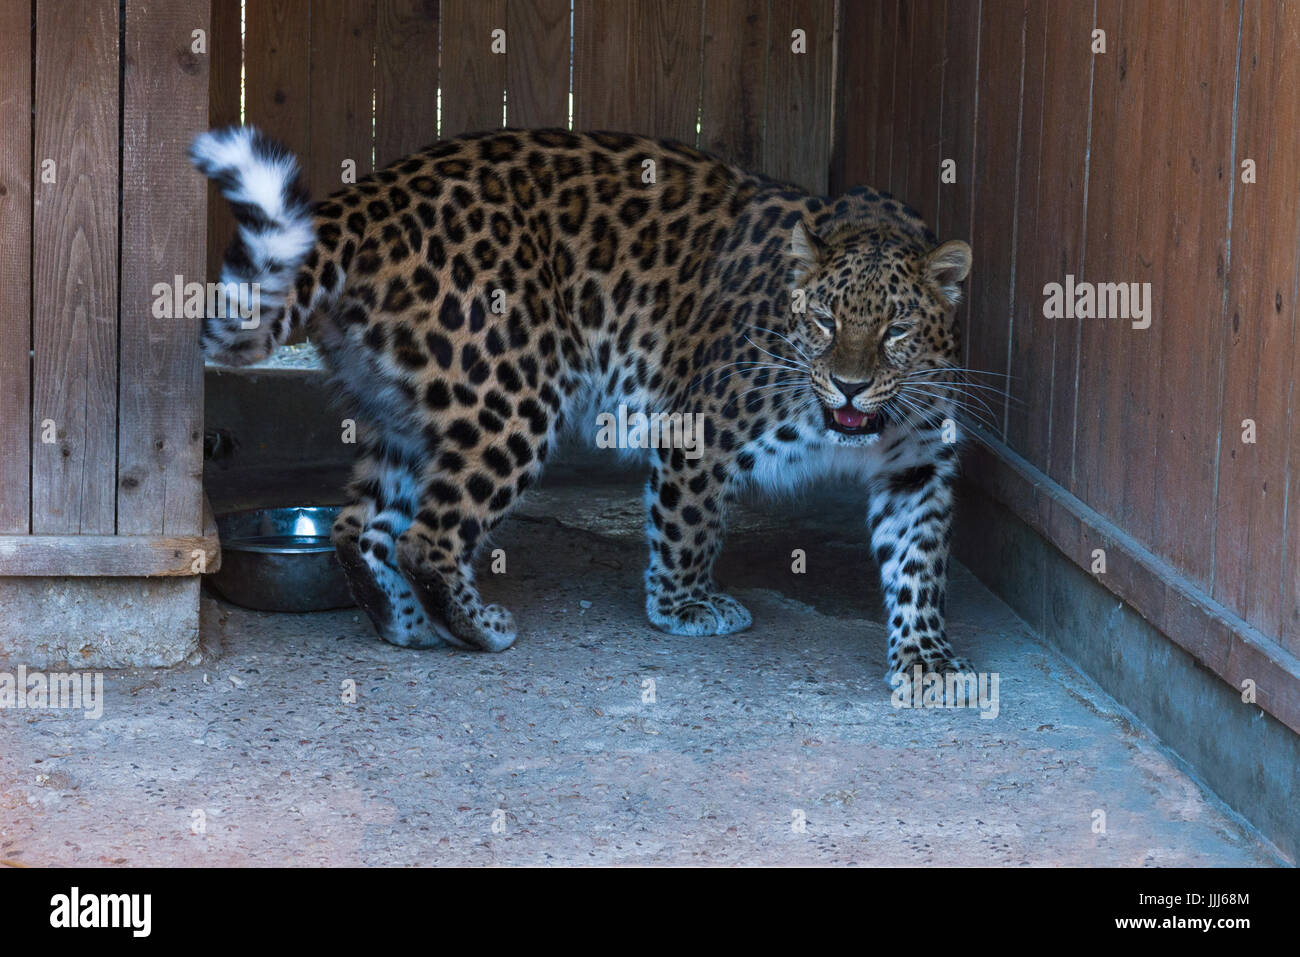 the far Eastern snow leopard at the zoo. - Stock Image